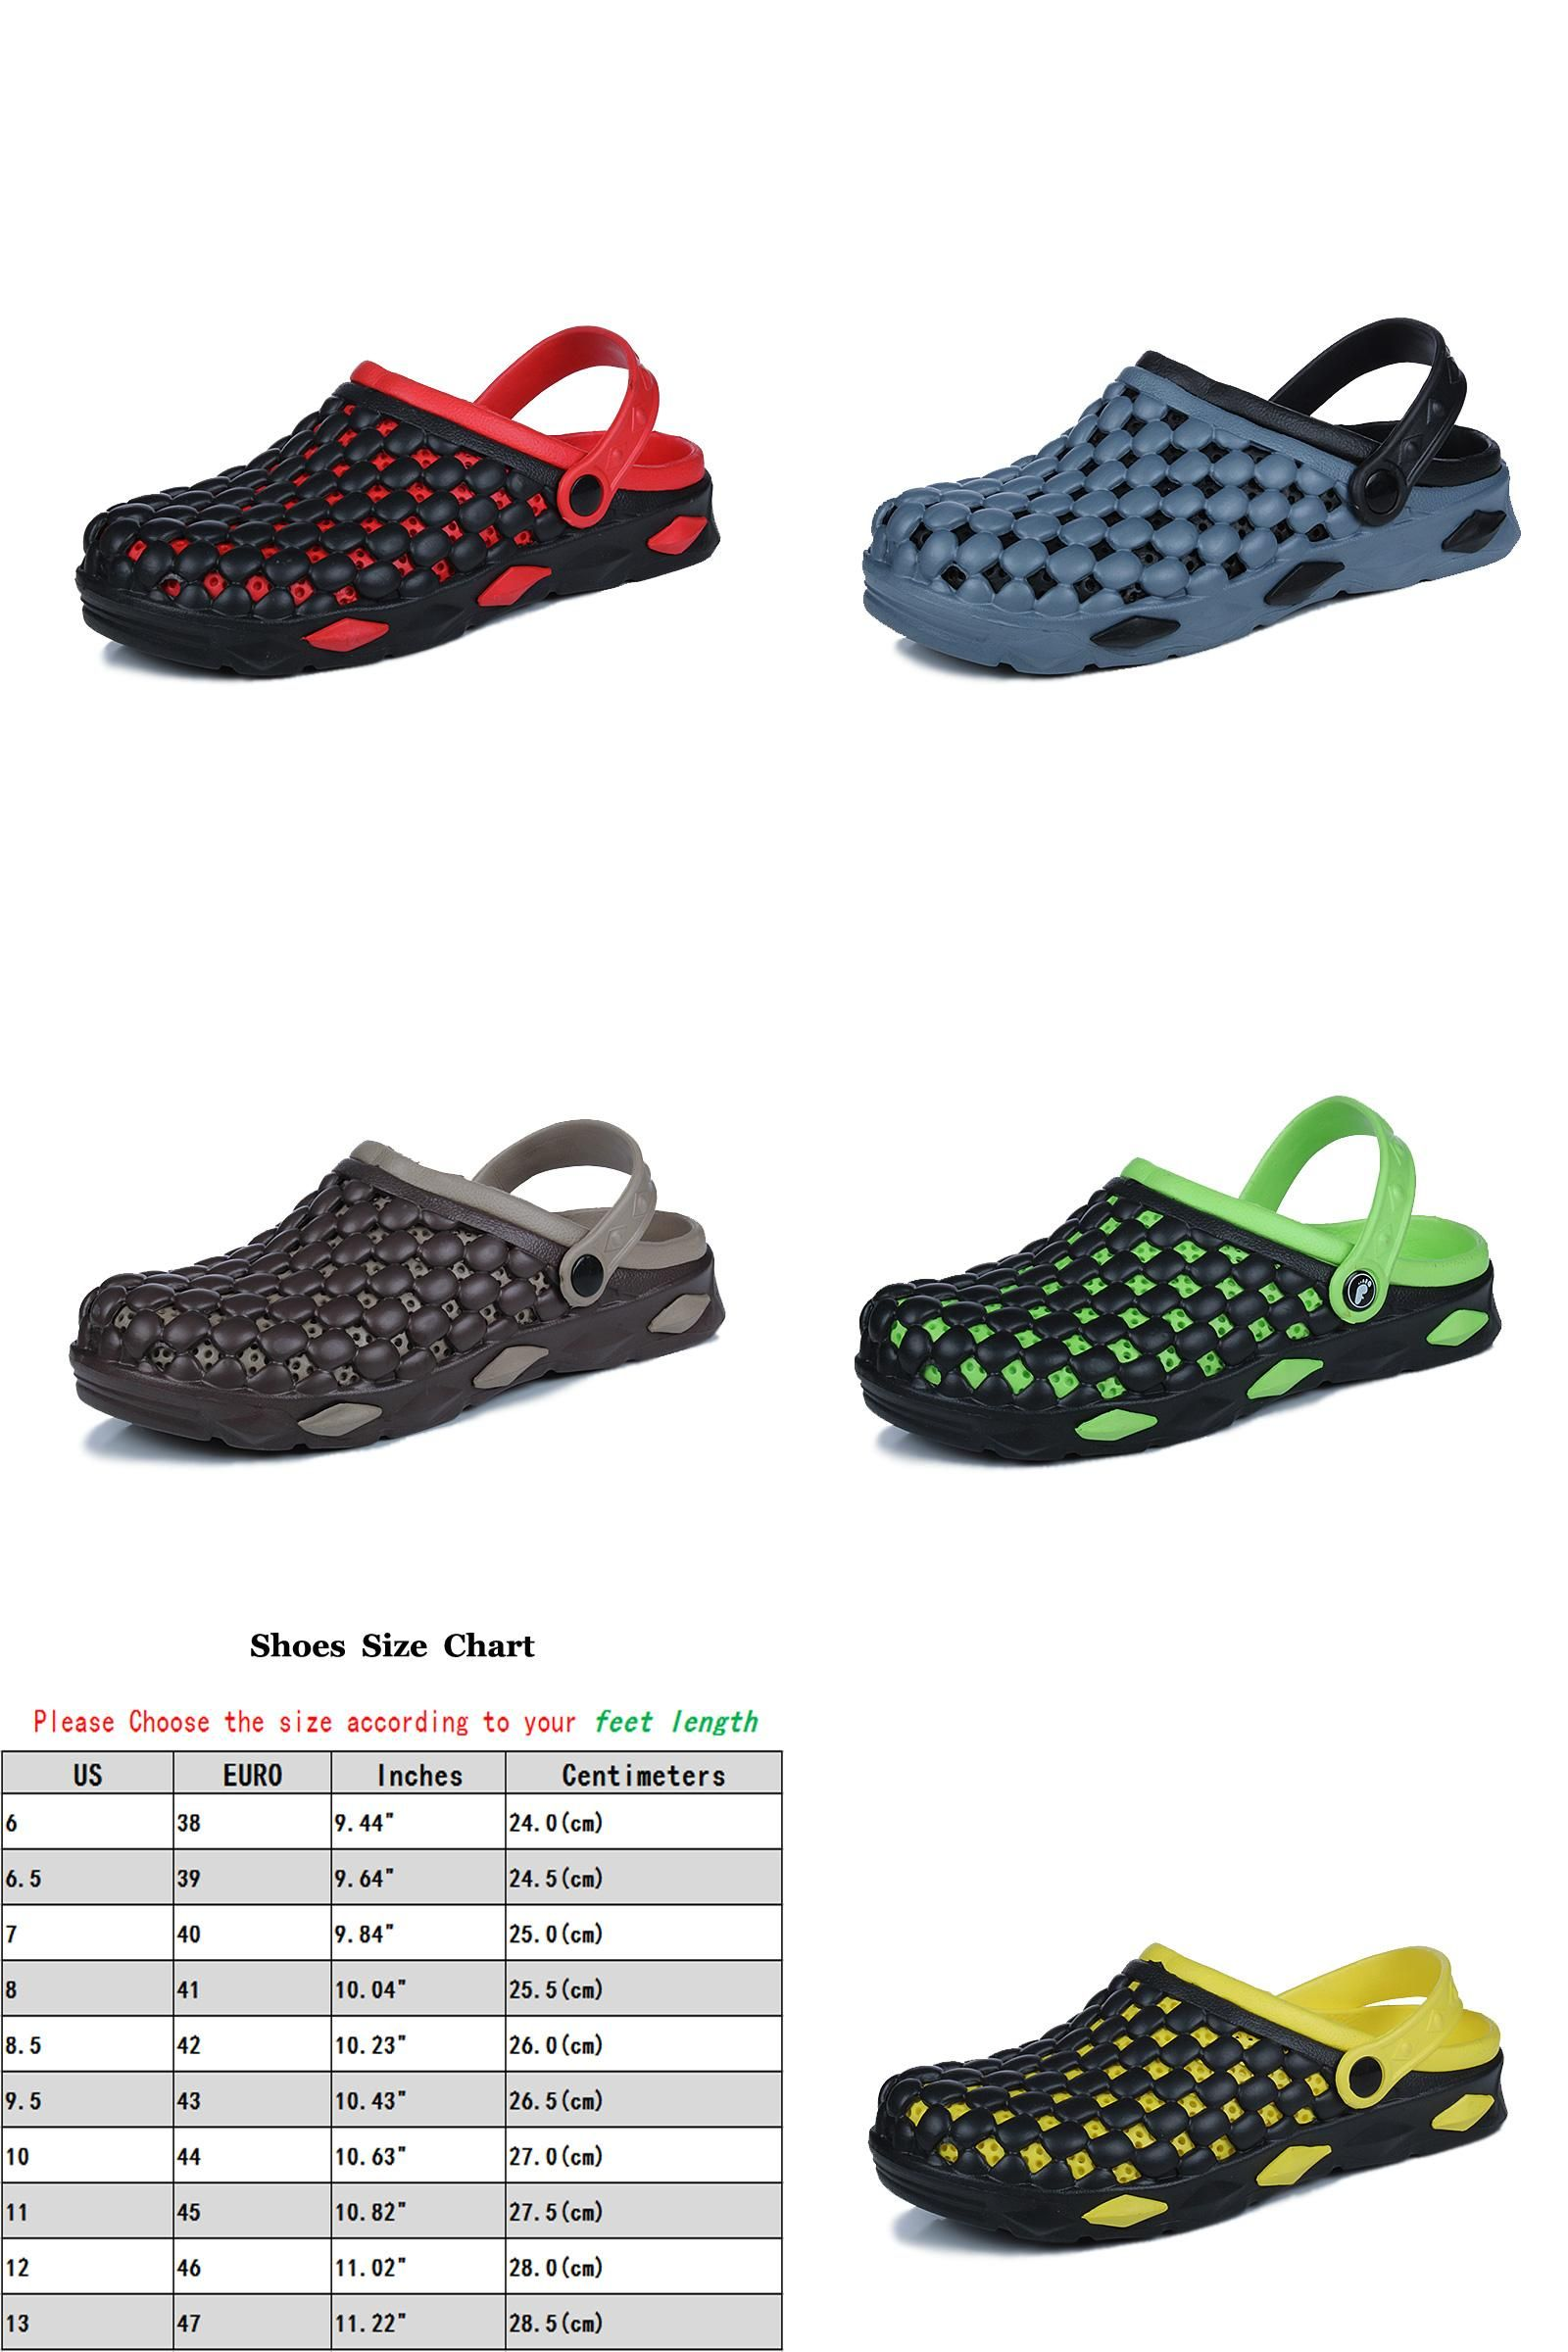 d6dc85f1a413  Visit to Buy  Summer Sandals Men Casual Shoes Mens Mules Clogs Croc  Breathable Beach